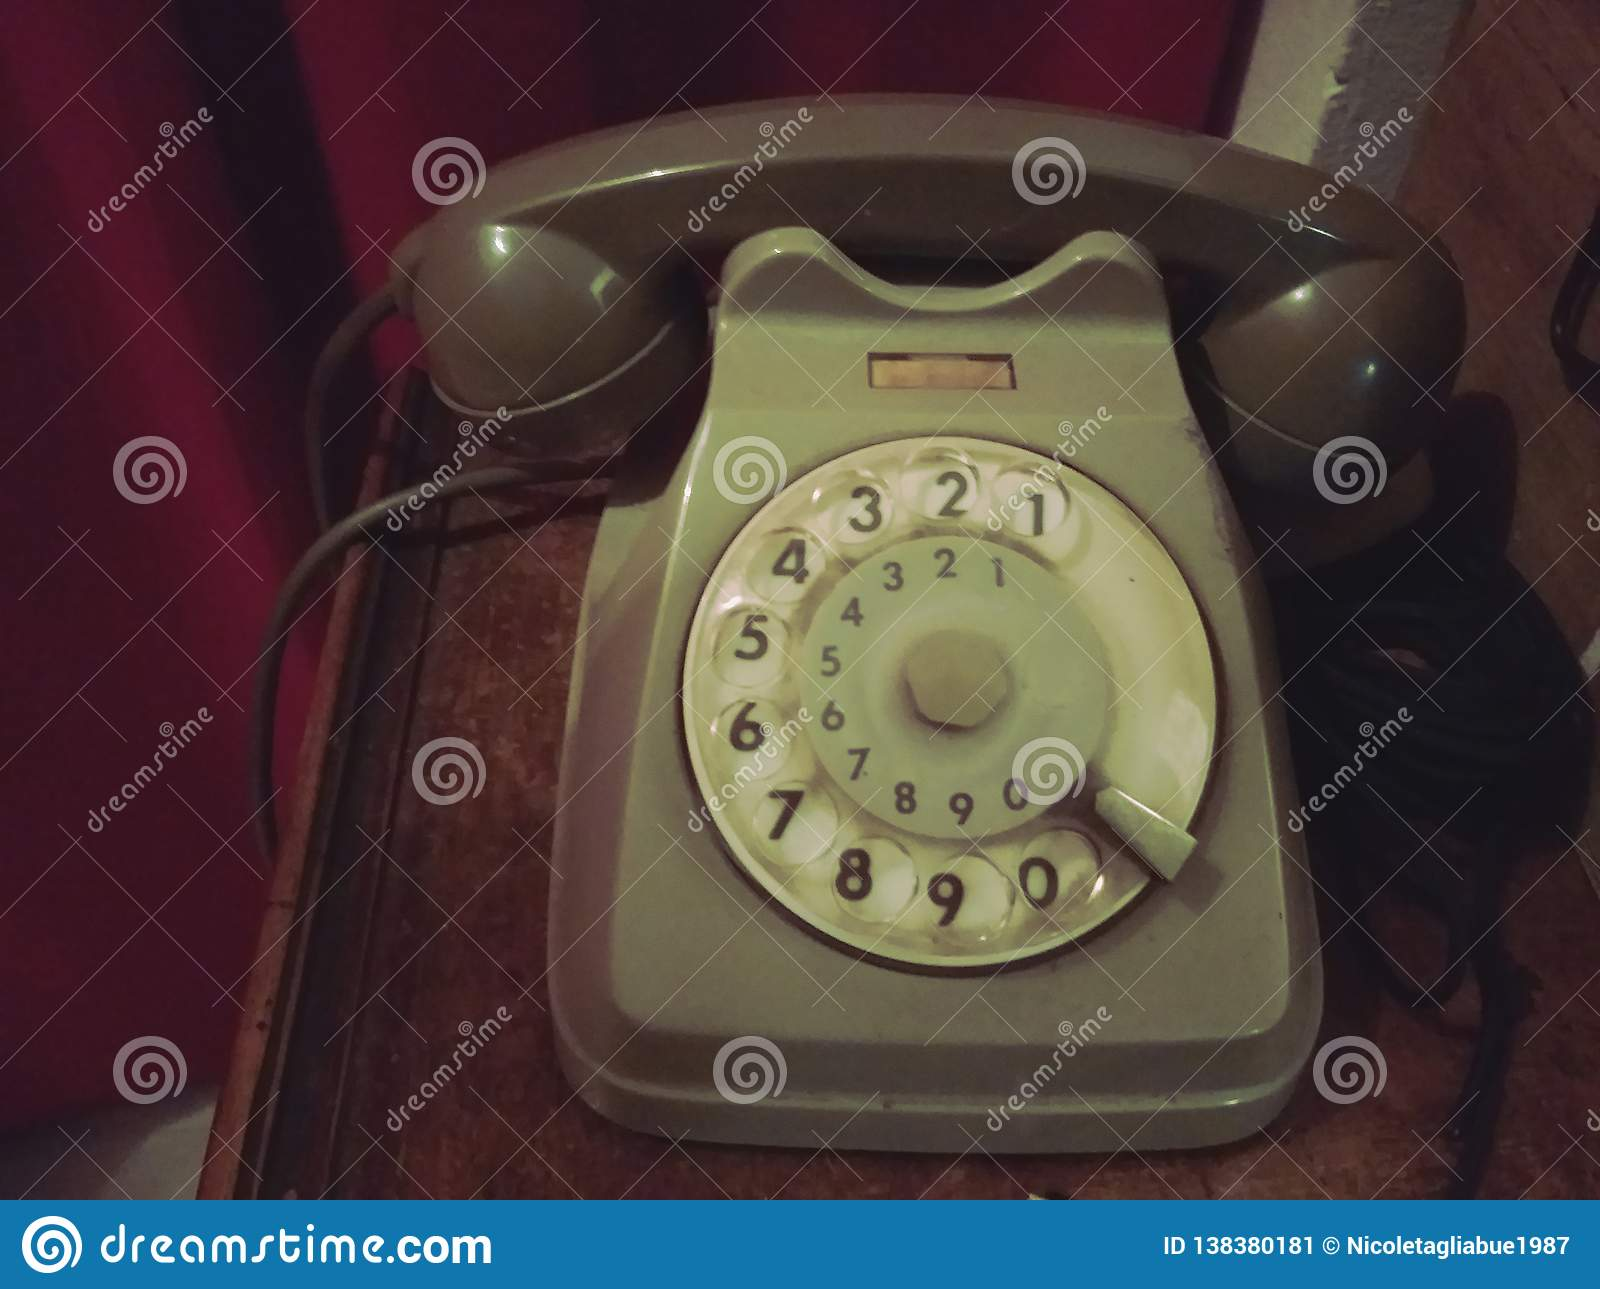 Old retro telephone on a wooden table with red curtain on the background - old photo, vintage style effect